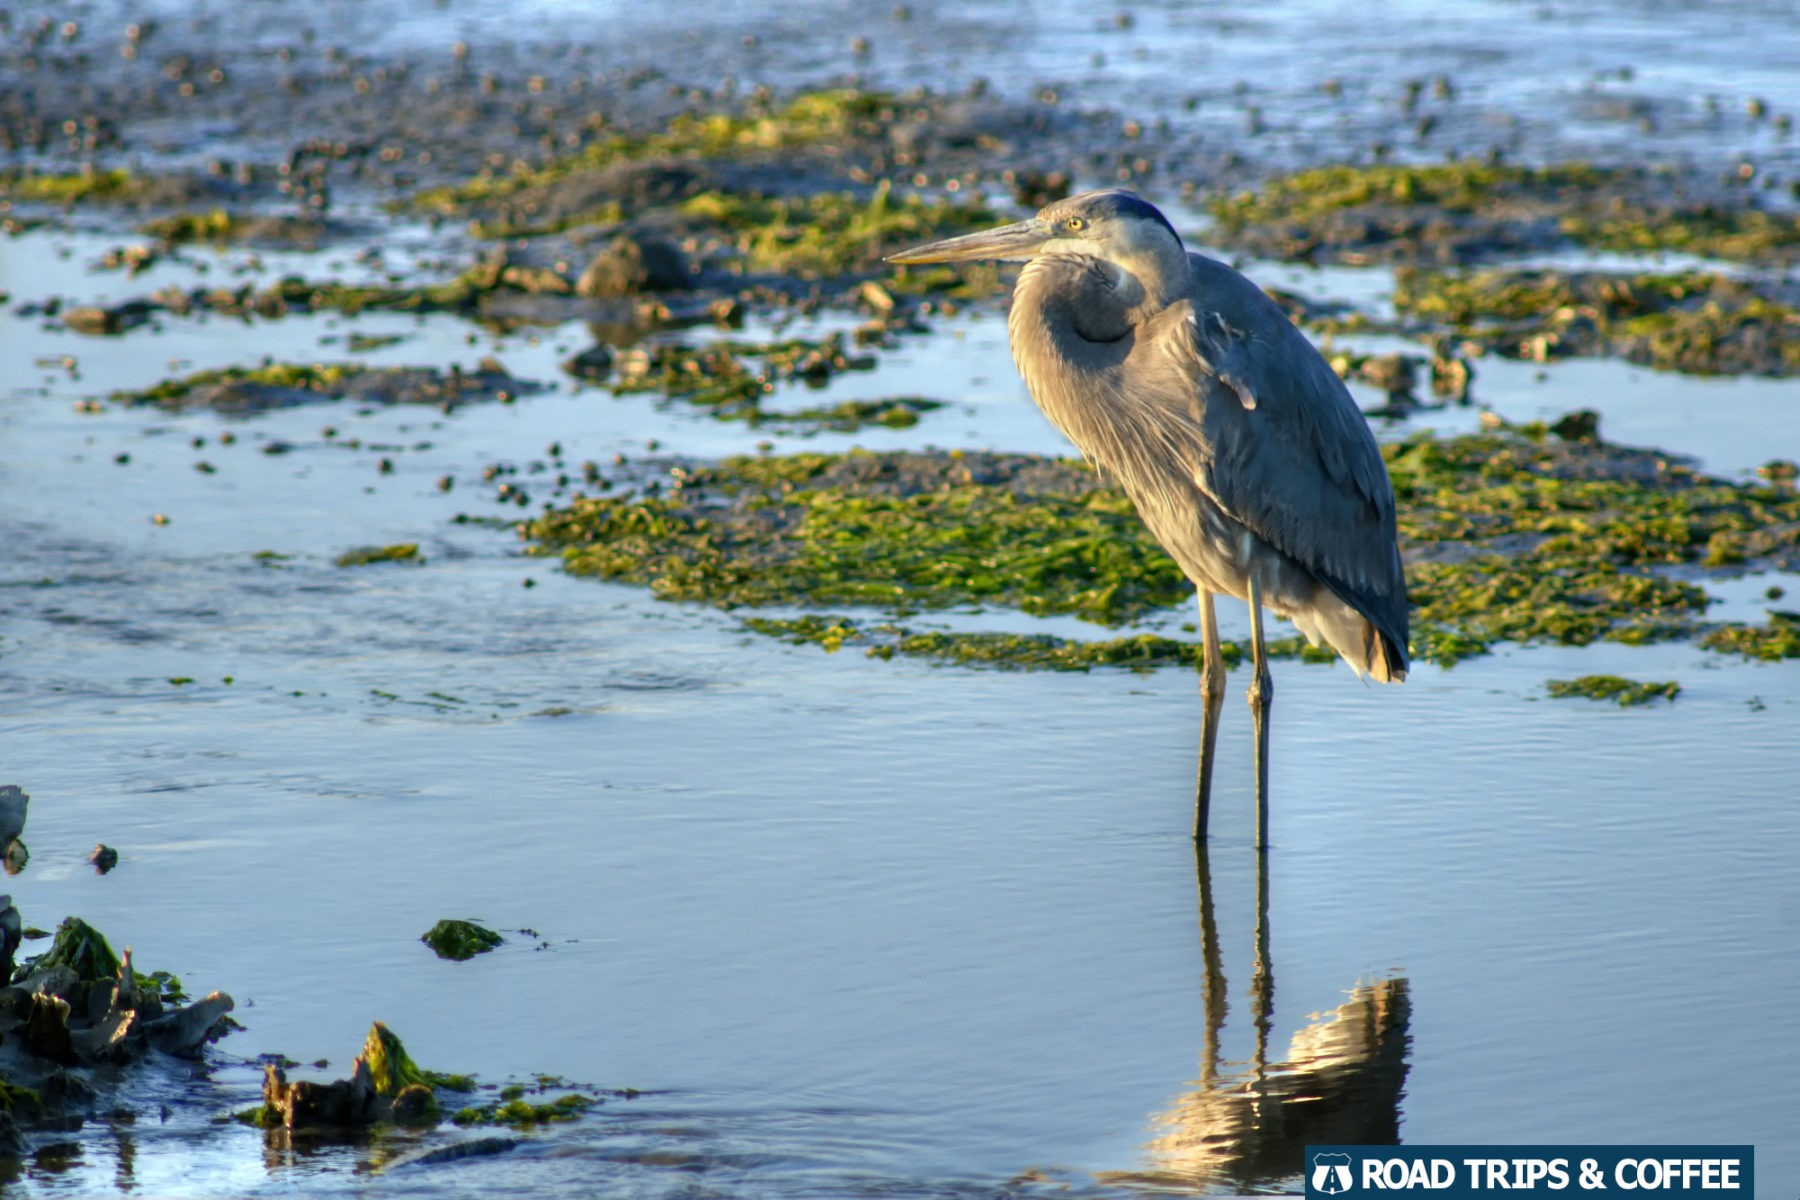 A blue heron stands in the shallow water at Huntington Beach State Park in Murrells Inlet, South Carolina